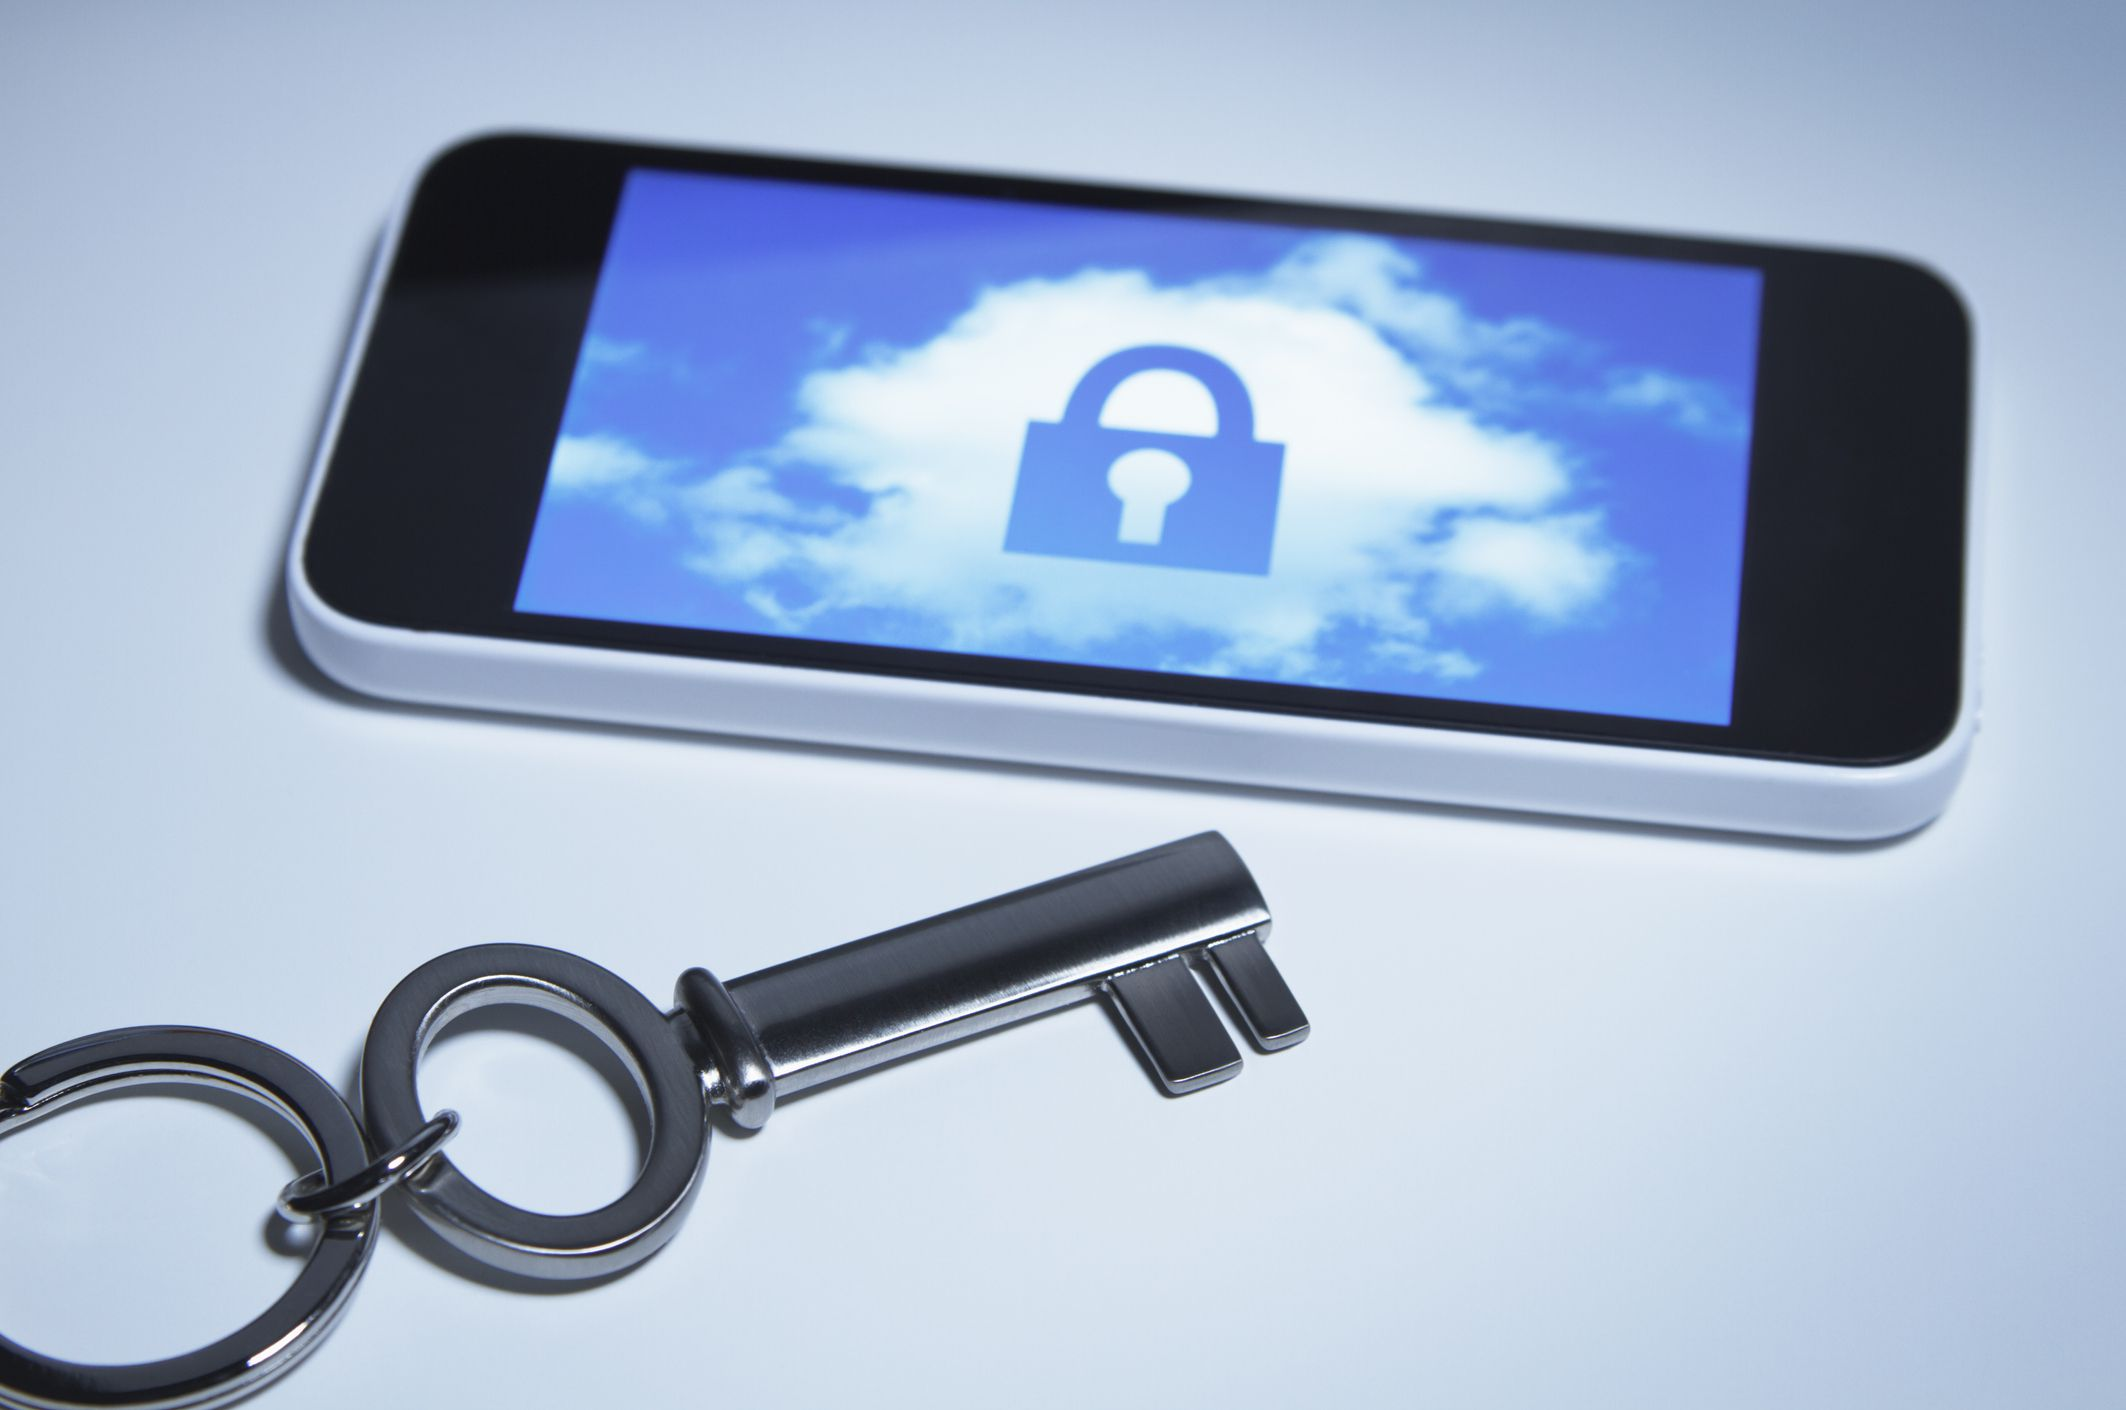 How to Unlock Your Nokia Phone